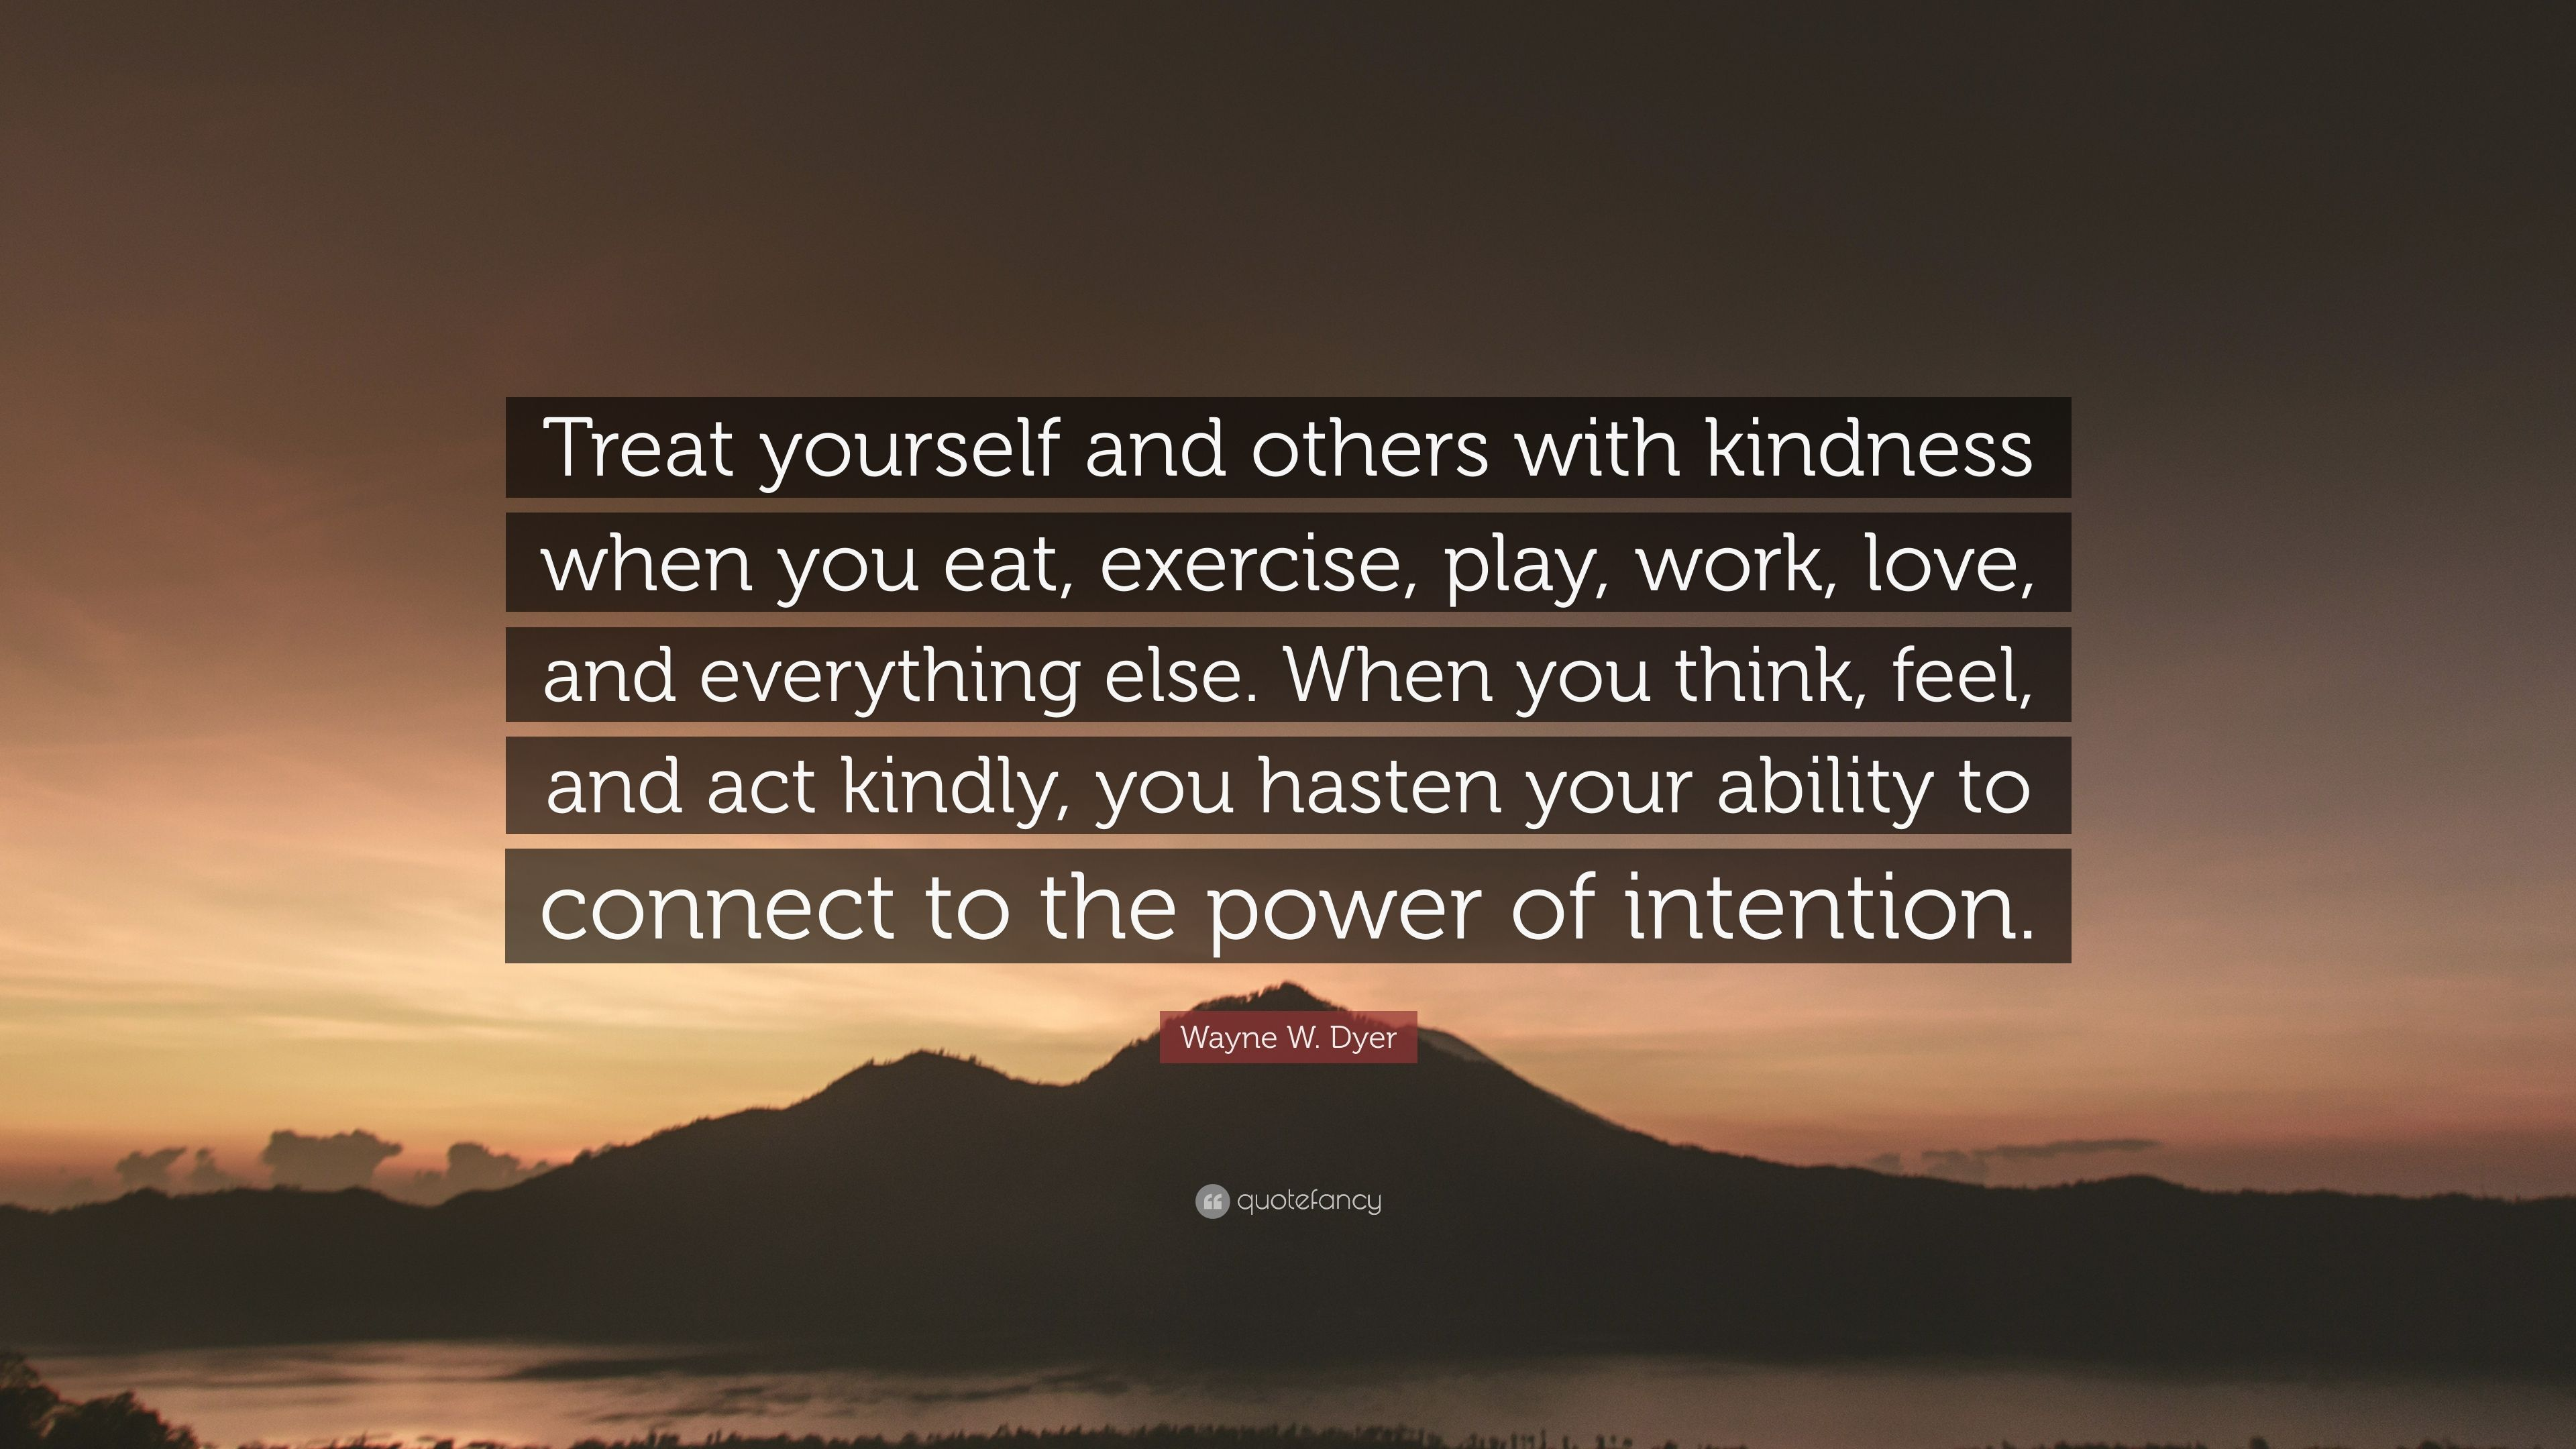 Wayne W Dyer Quote Treat Yourself And Others With Kindness When